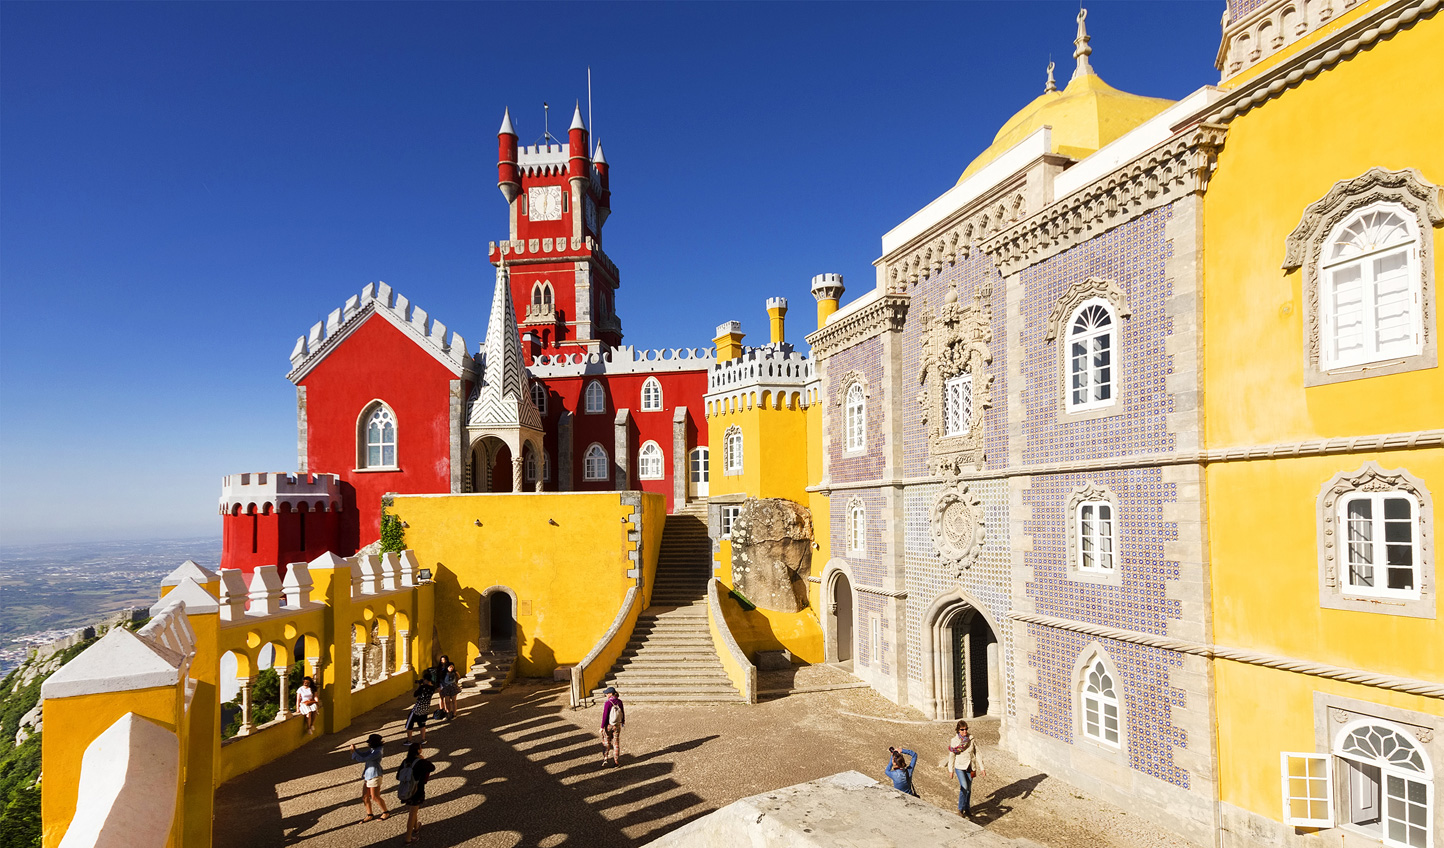 Marvel at whimsical design up at Pena Palace